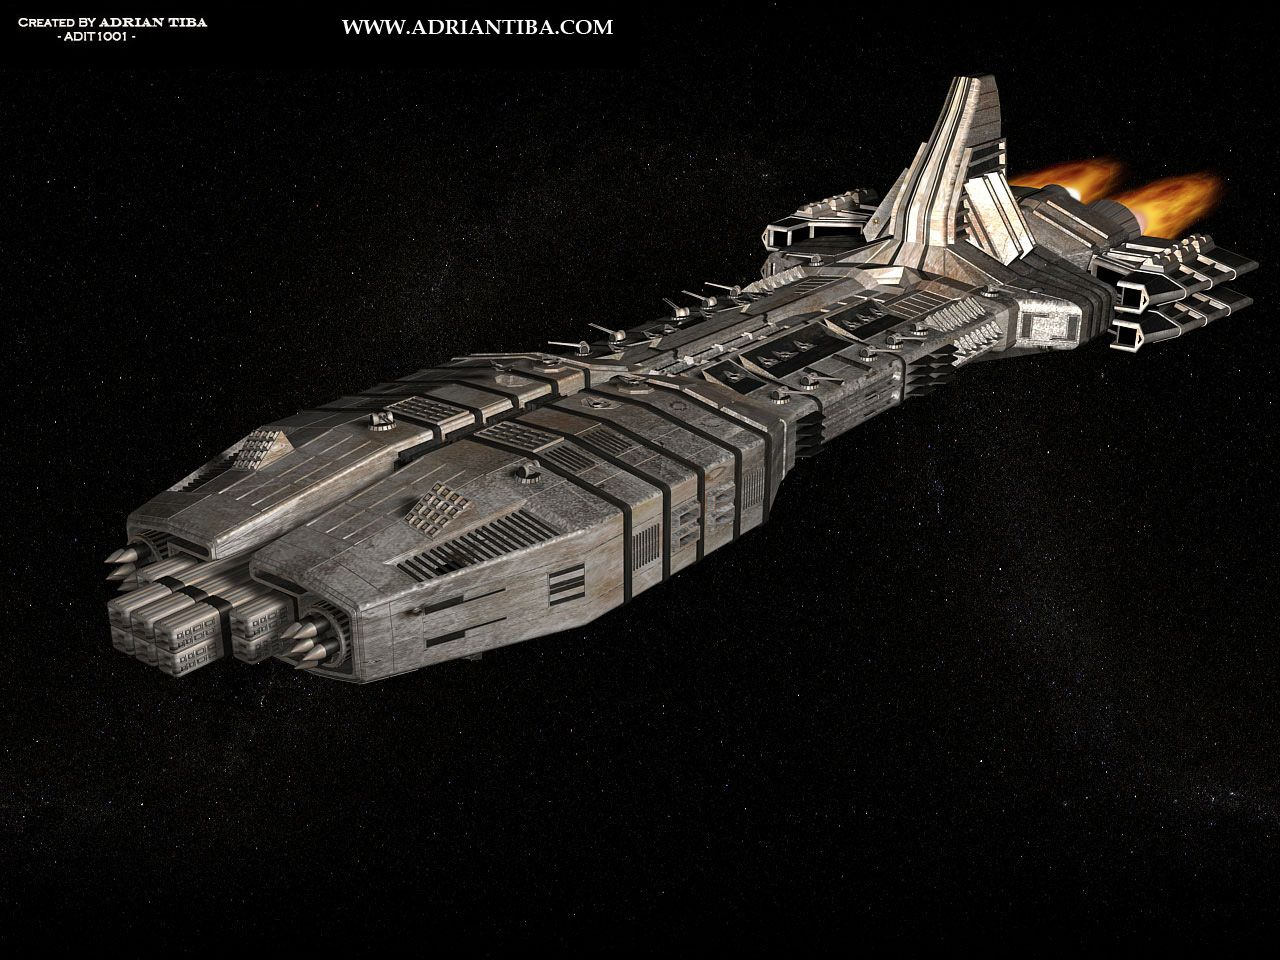 s star wars starship wallpapers - photo #16